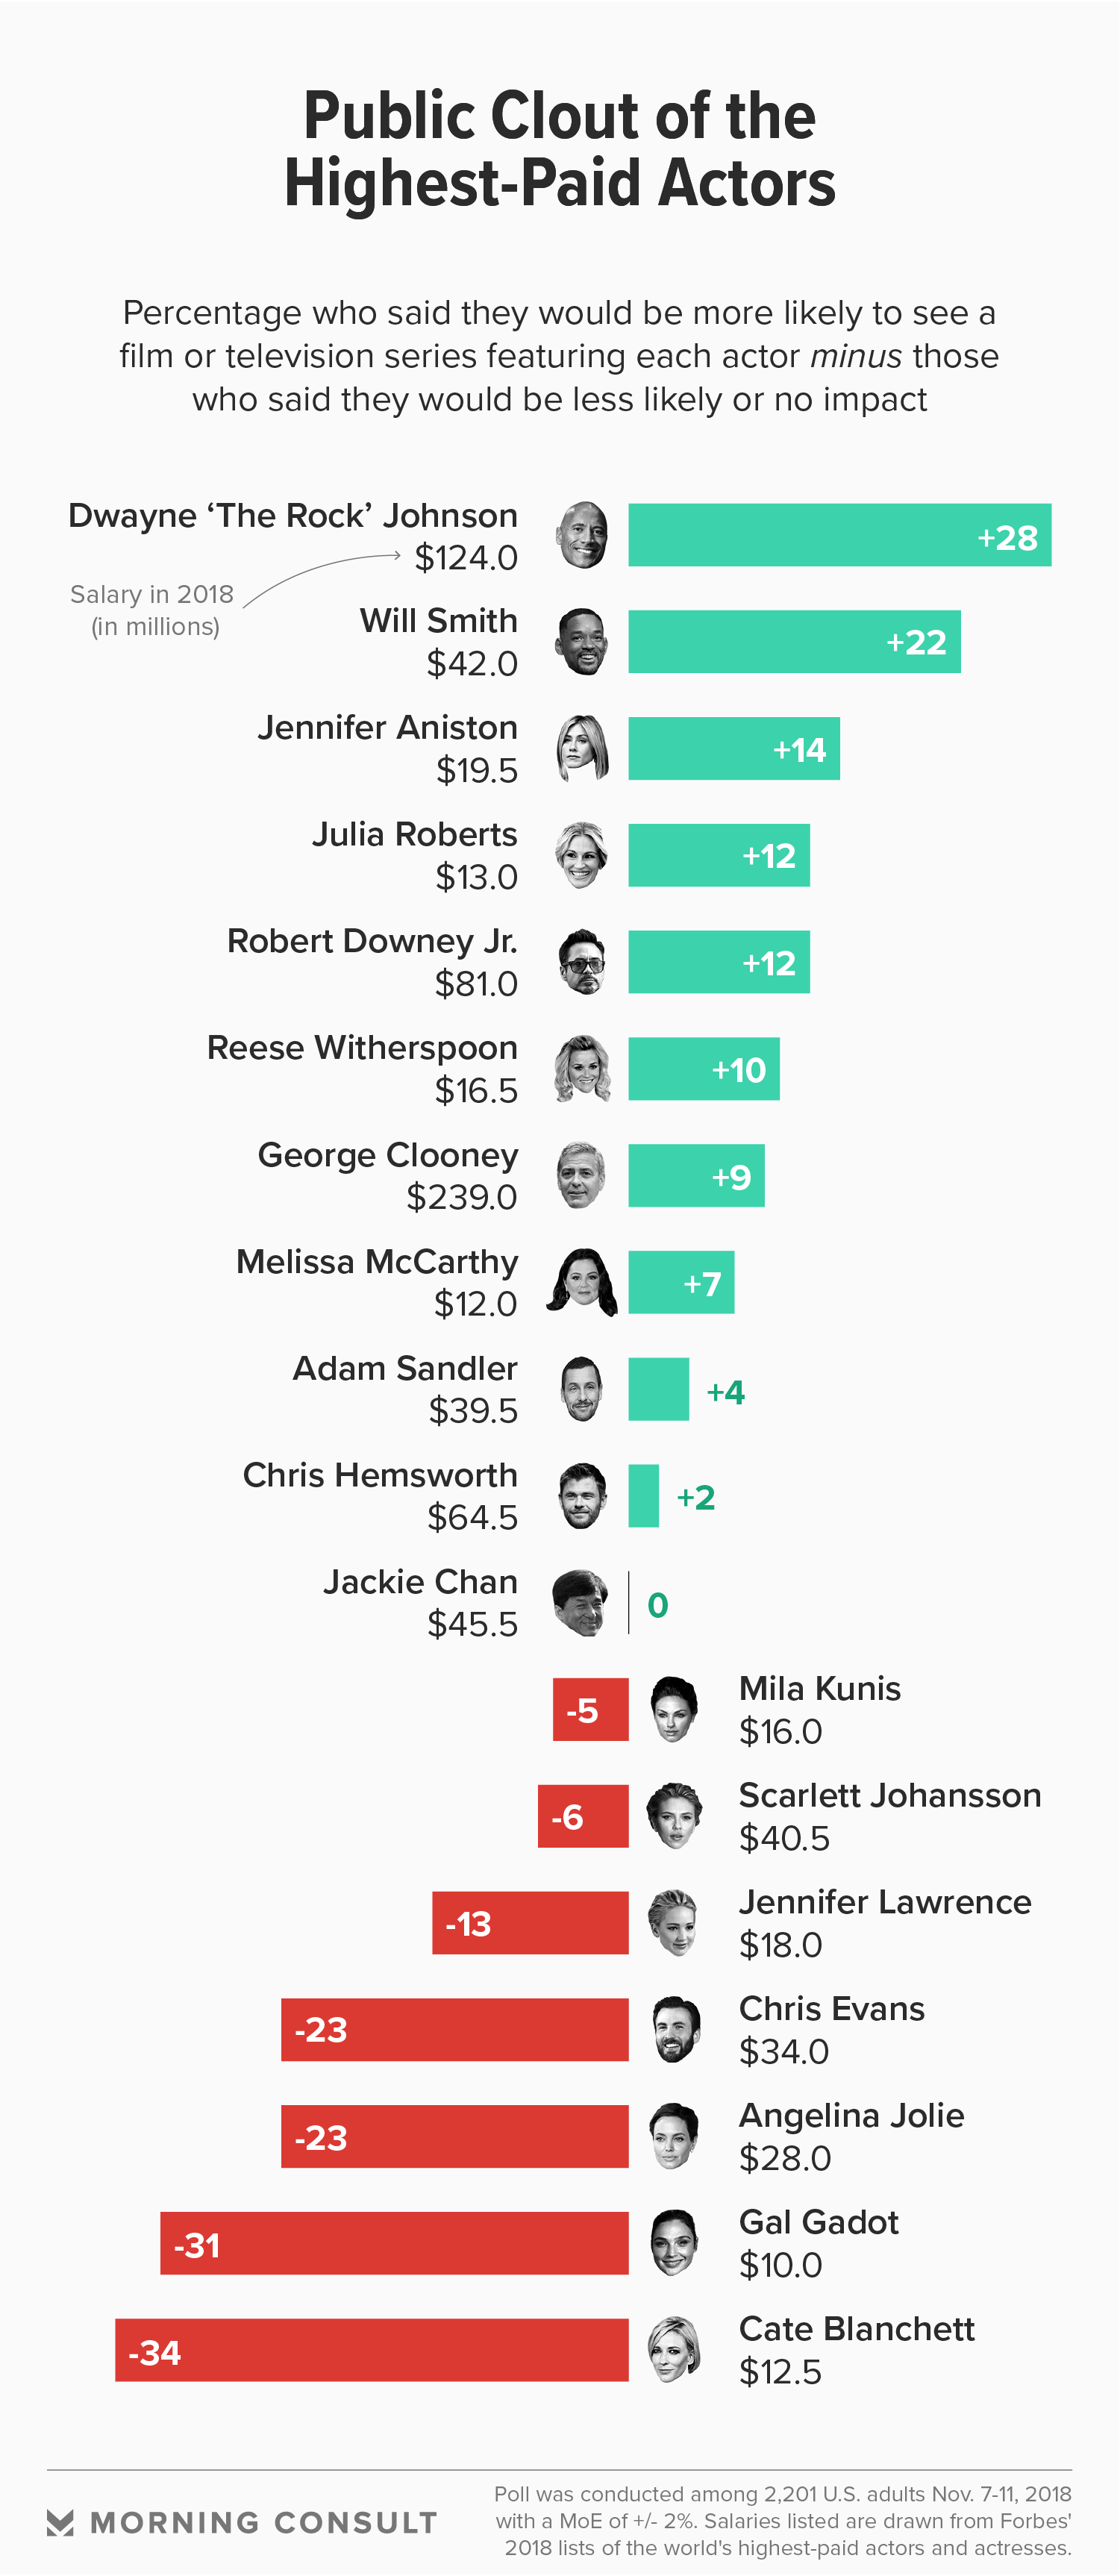 The Highest-Paid Actors May Not Have Most Public Clout